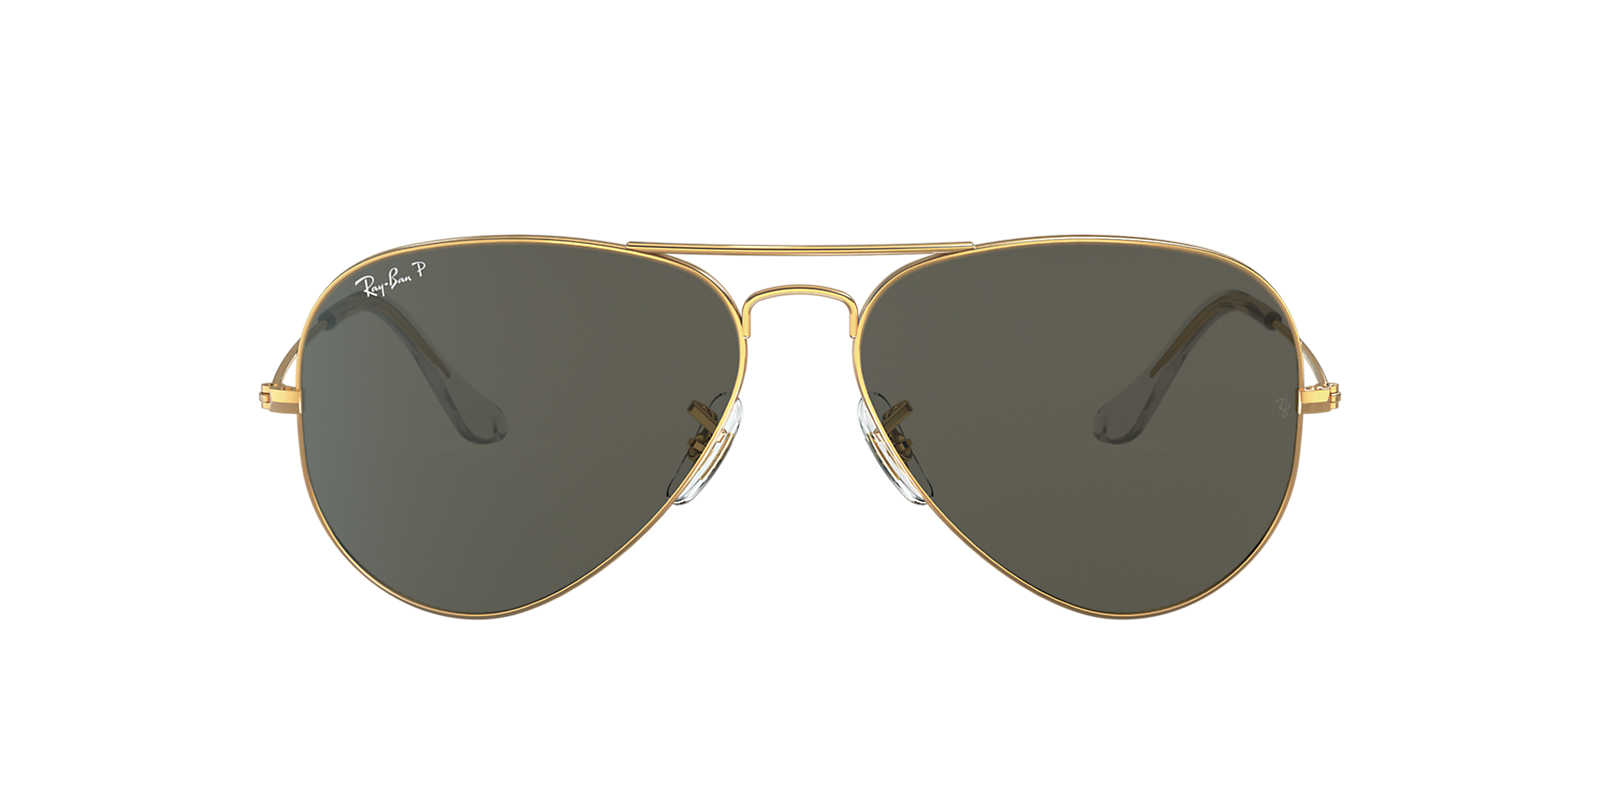 buy ray ban polarized sunglasses  ray ban gold rb3025 62 original aviator green polarized lenses 62mm